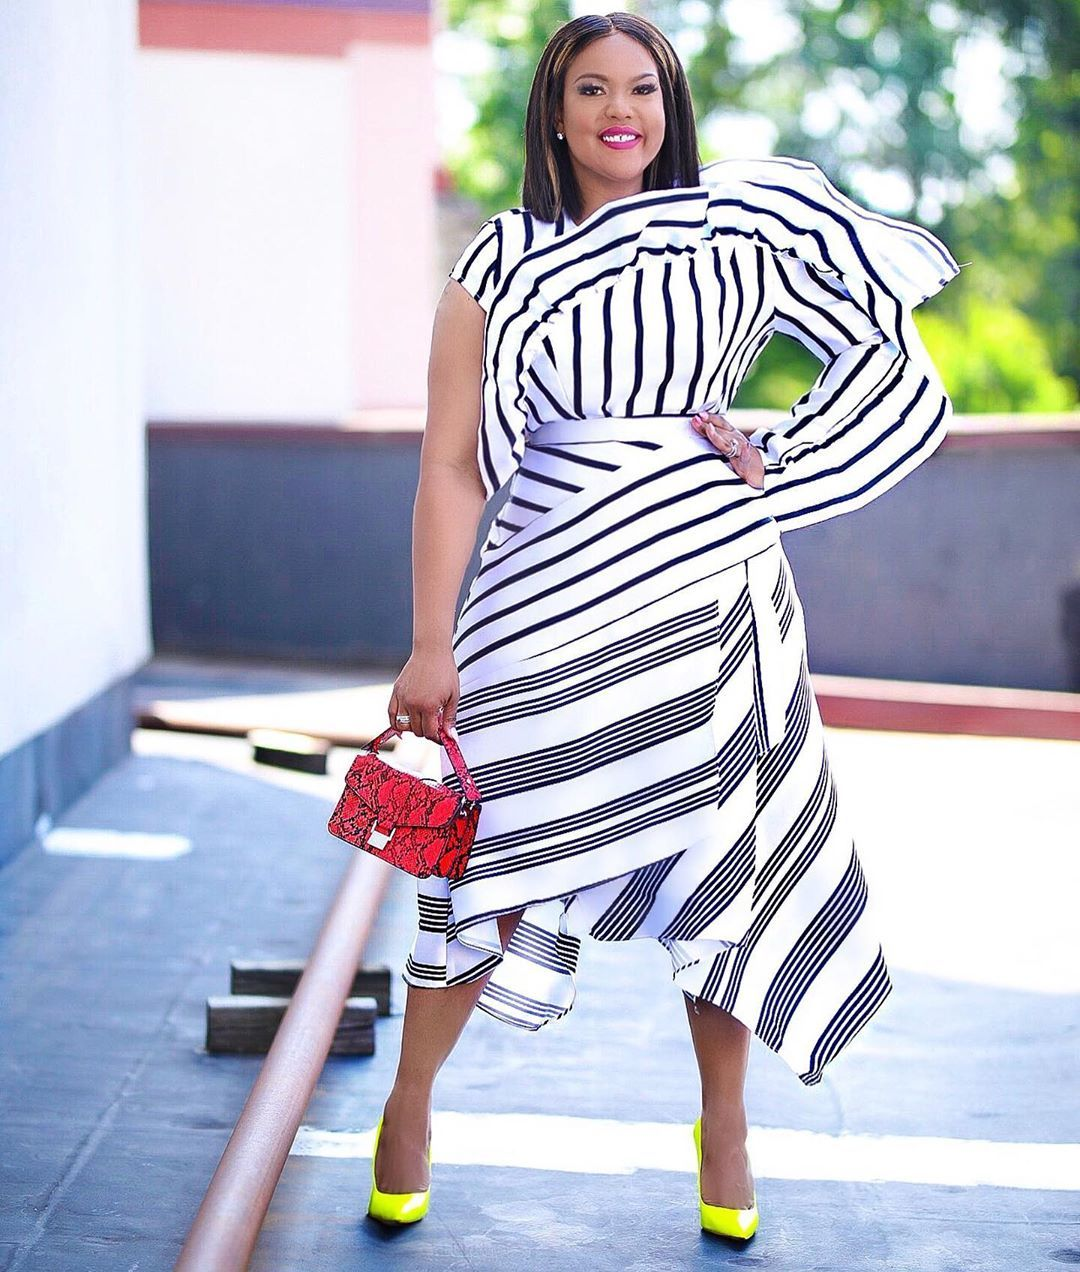 The Best Summer Outfit Ideas For Brunch in 2019! Cool